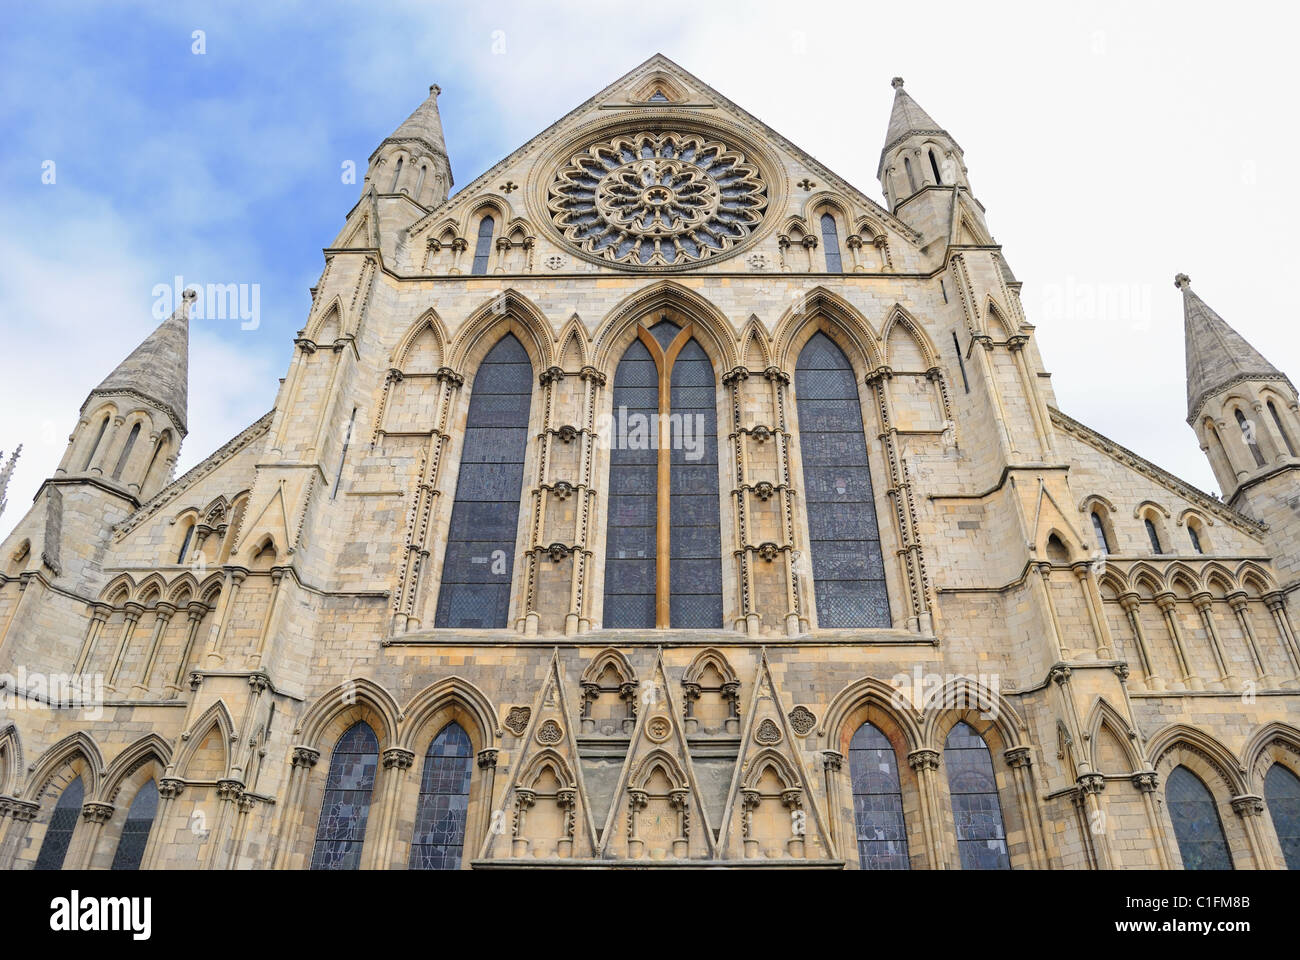 York Minster, a landmark cathedral in York, England. - Stock Image